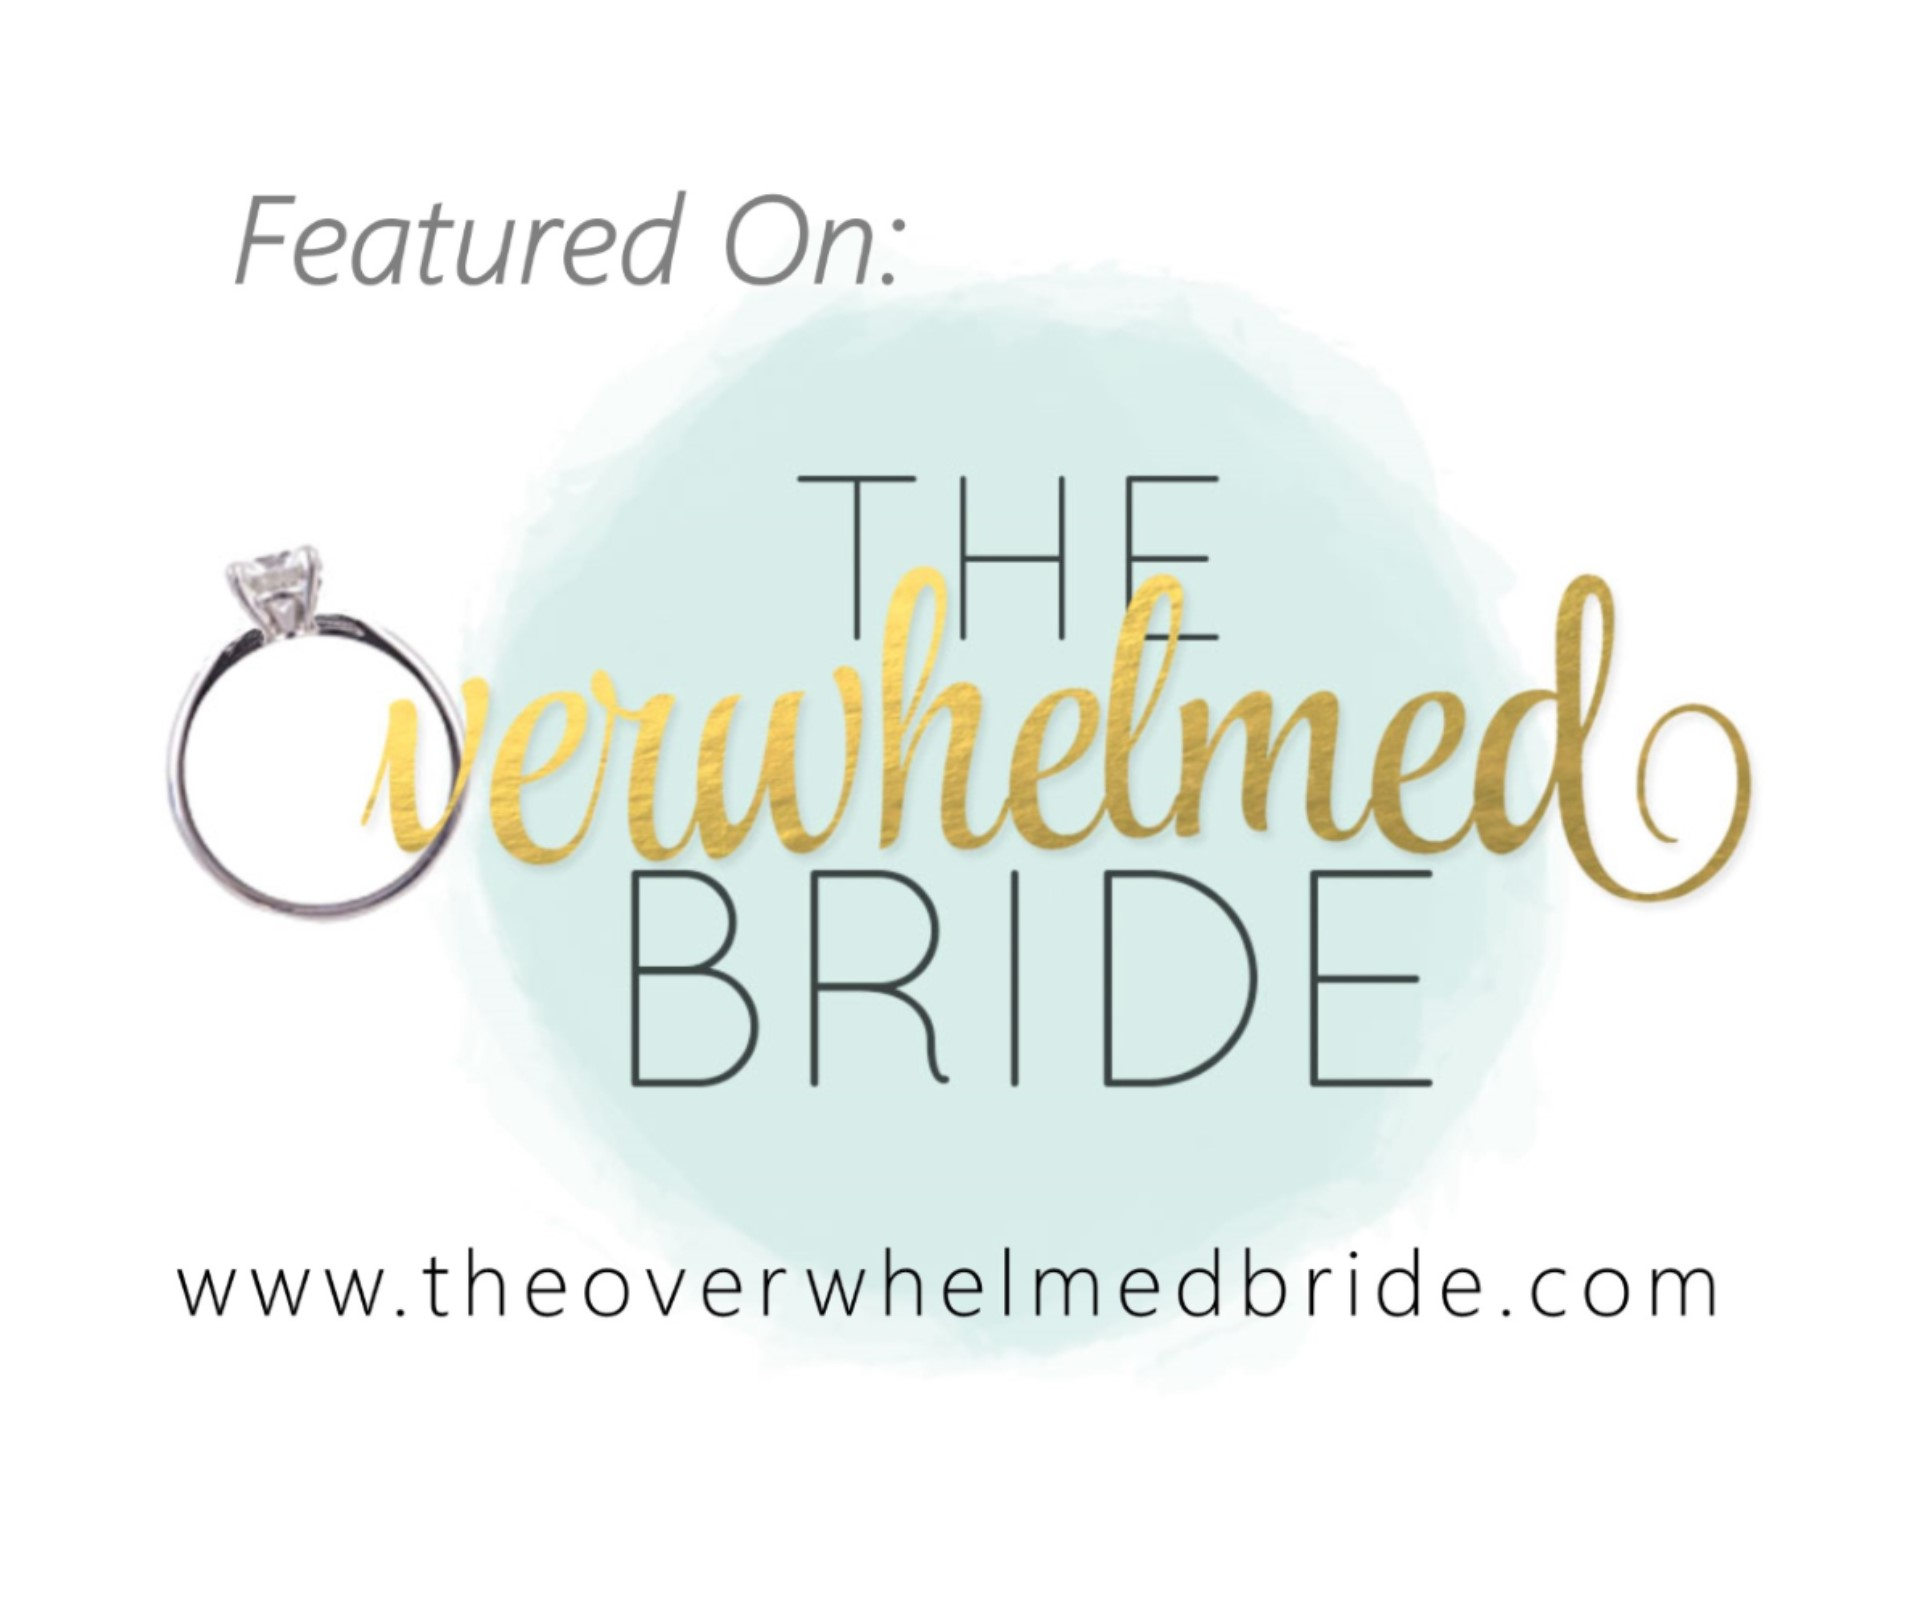 Featured On The Overwhelmed Bride - NEW.jpg